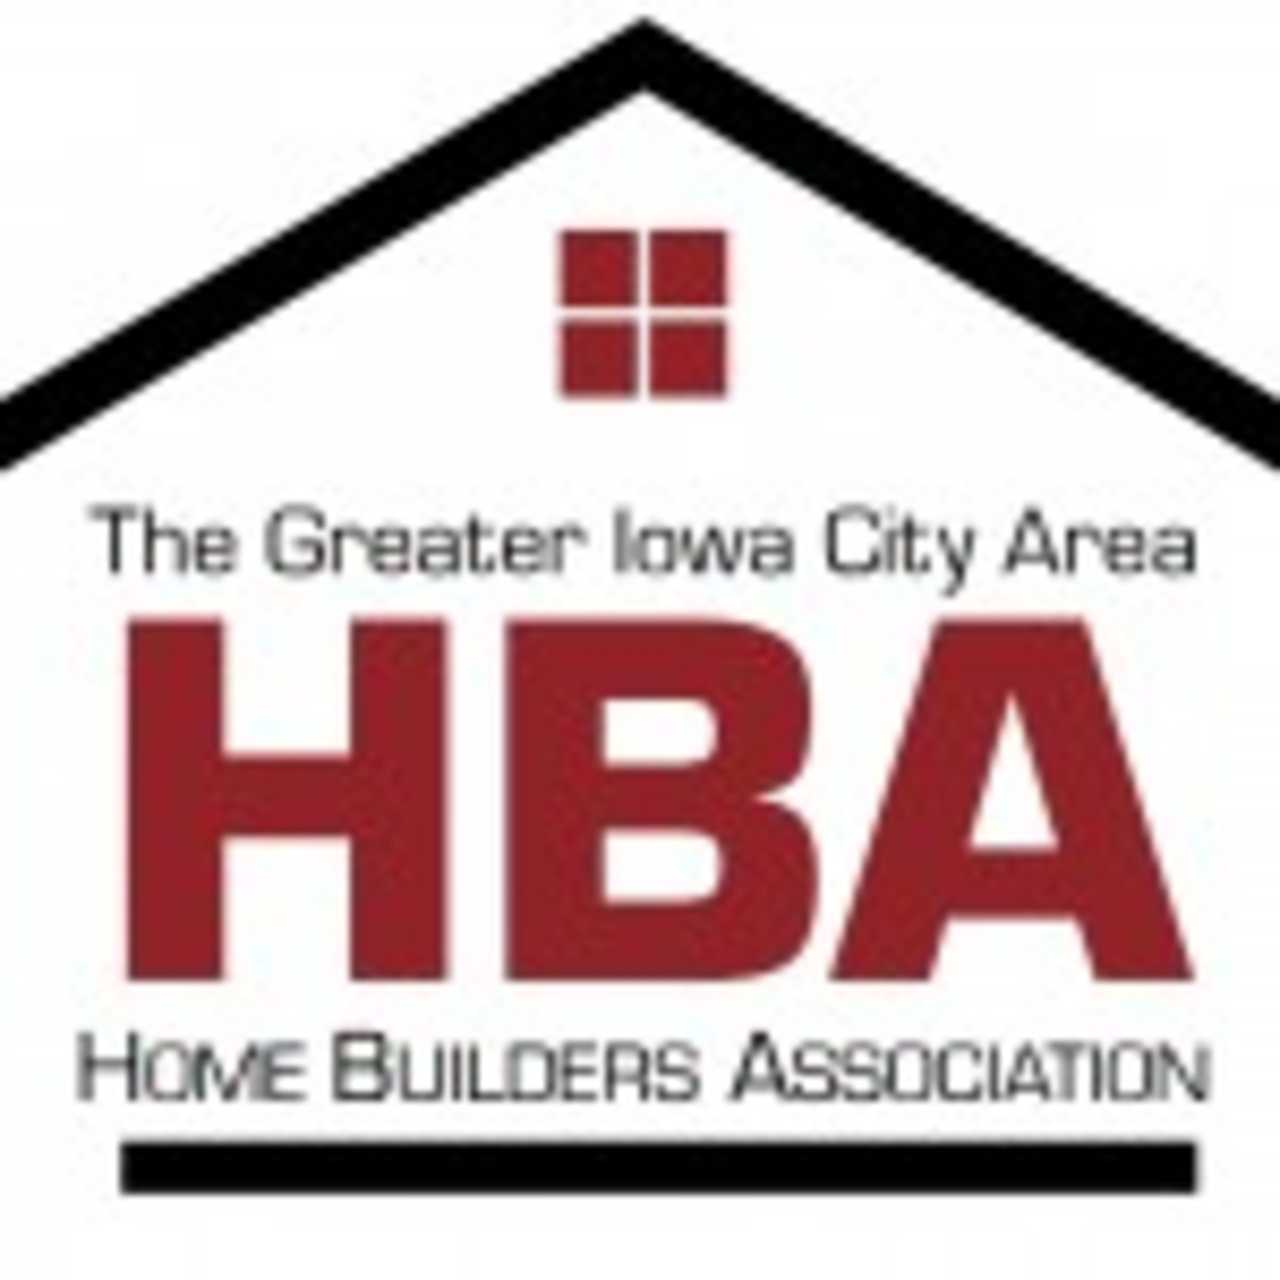 The Greater Iowa City Area Home Builders Association - Community - Event Centers in Iowa City IA